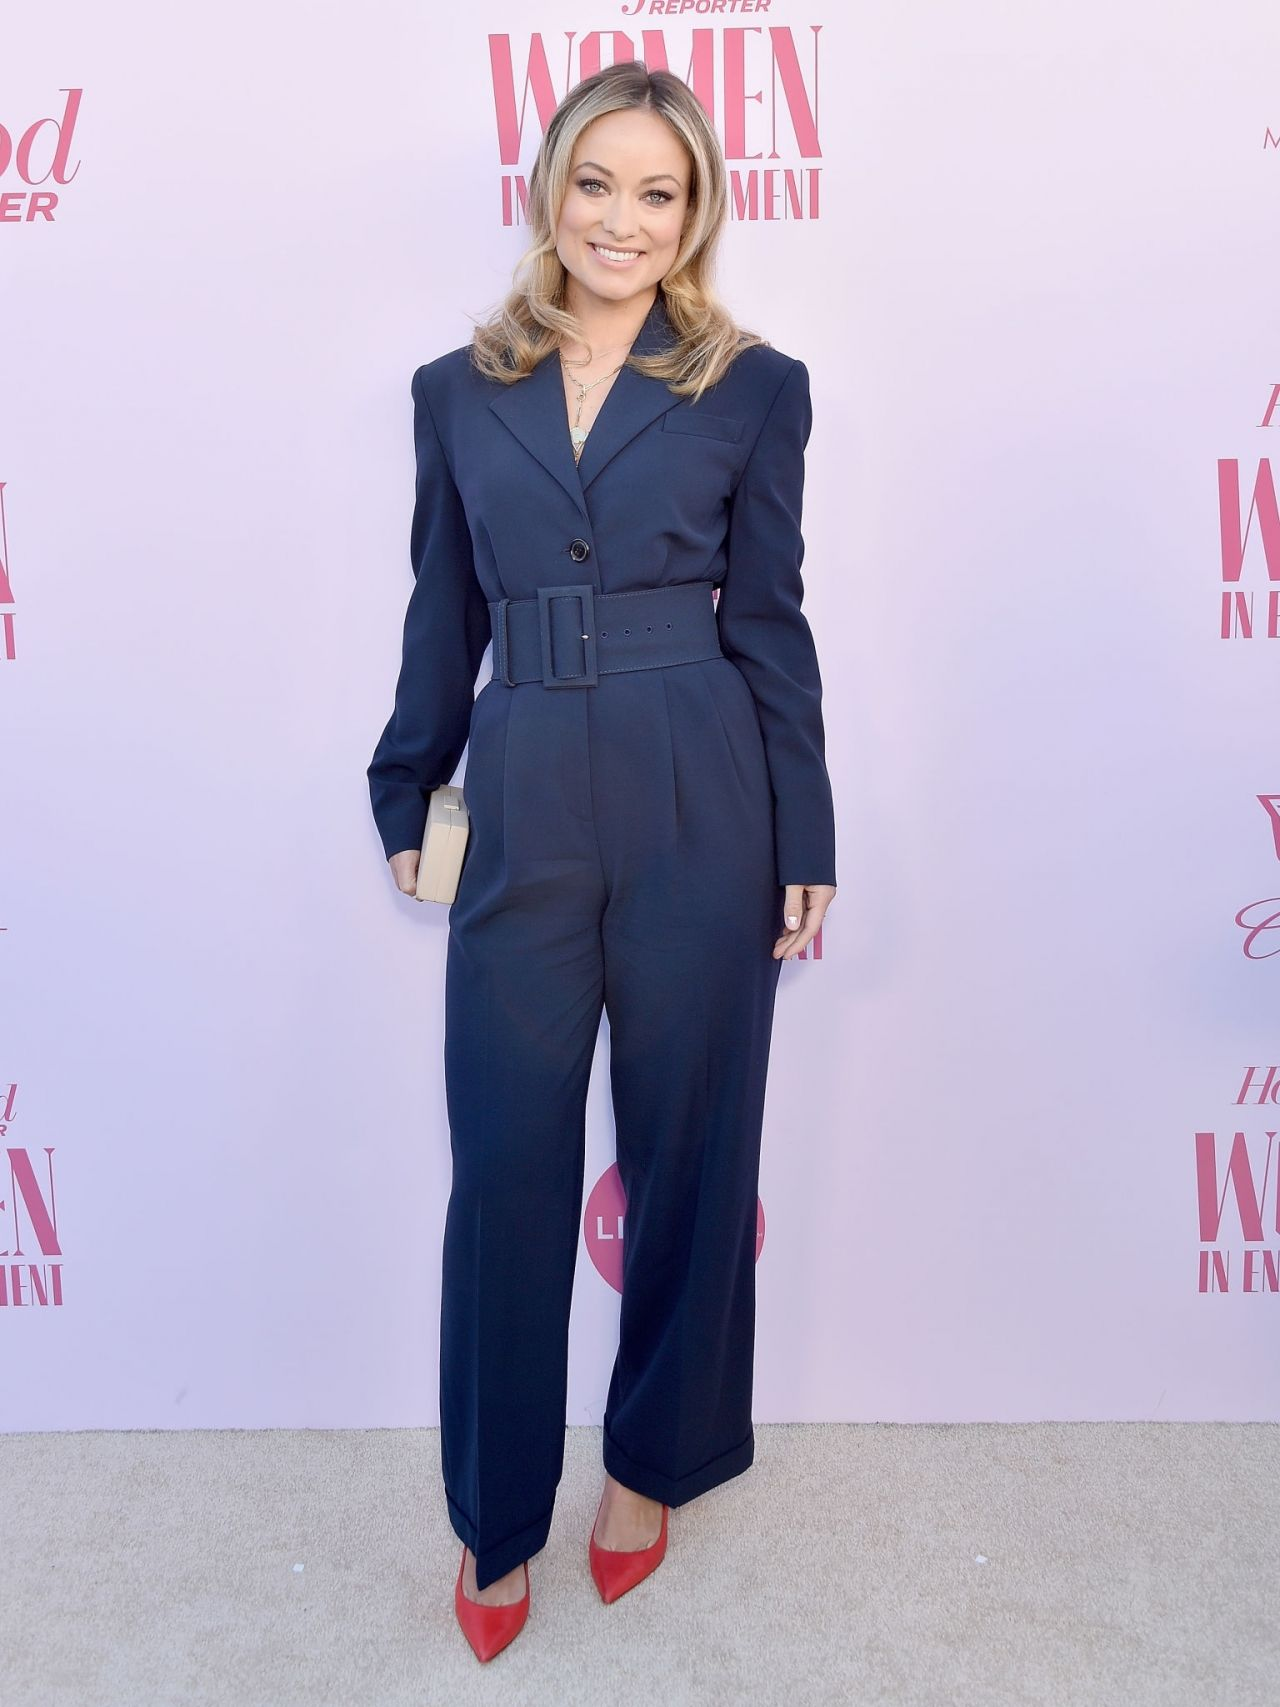 olivia-wilde-in-michael-kors-2019-hollywood-reporters-women-in-entertainment-breakfast-gala